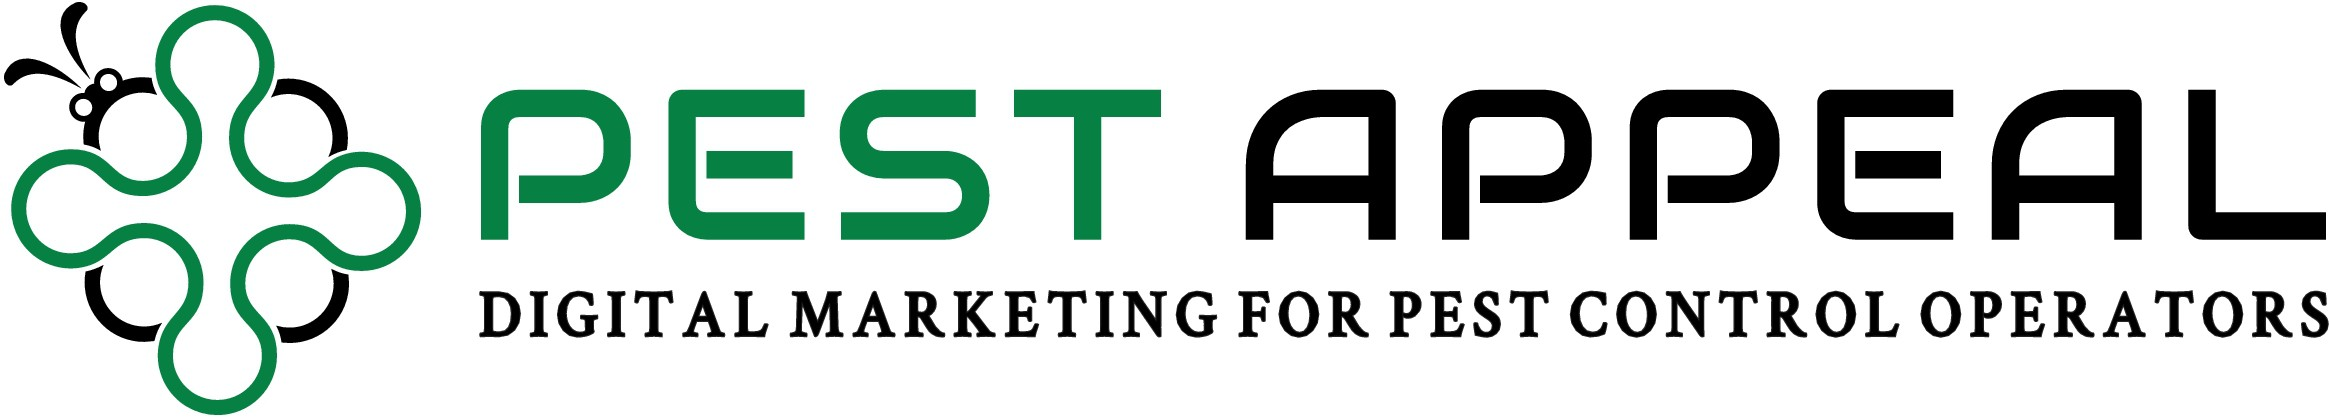 Create a magnetized logo for new digital marketing company